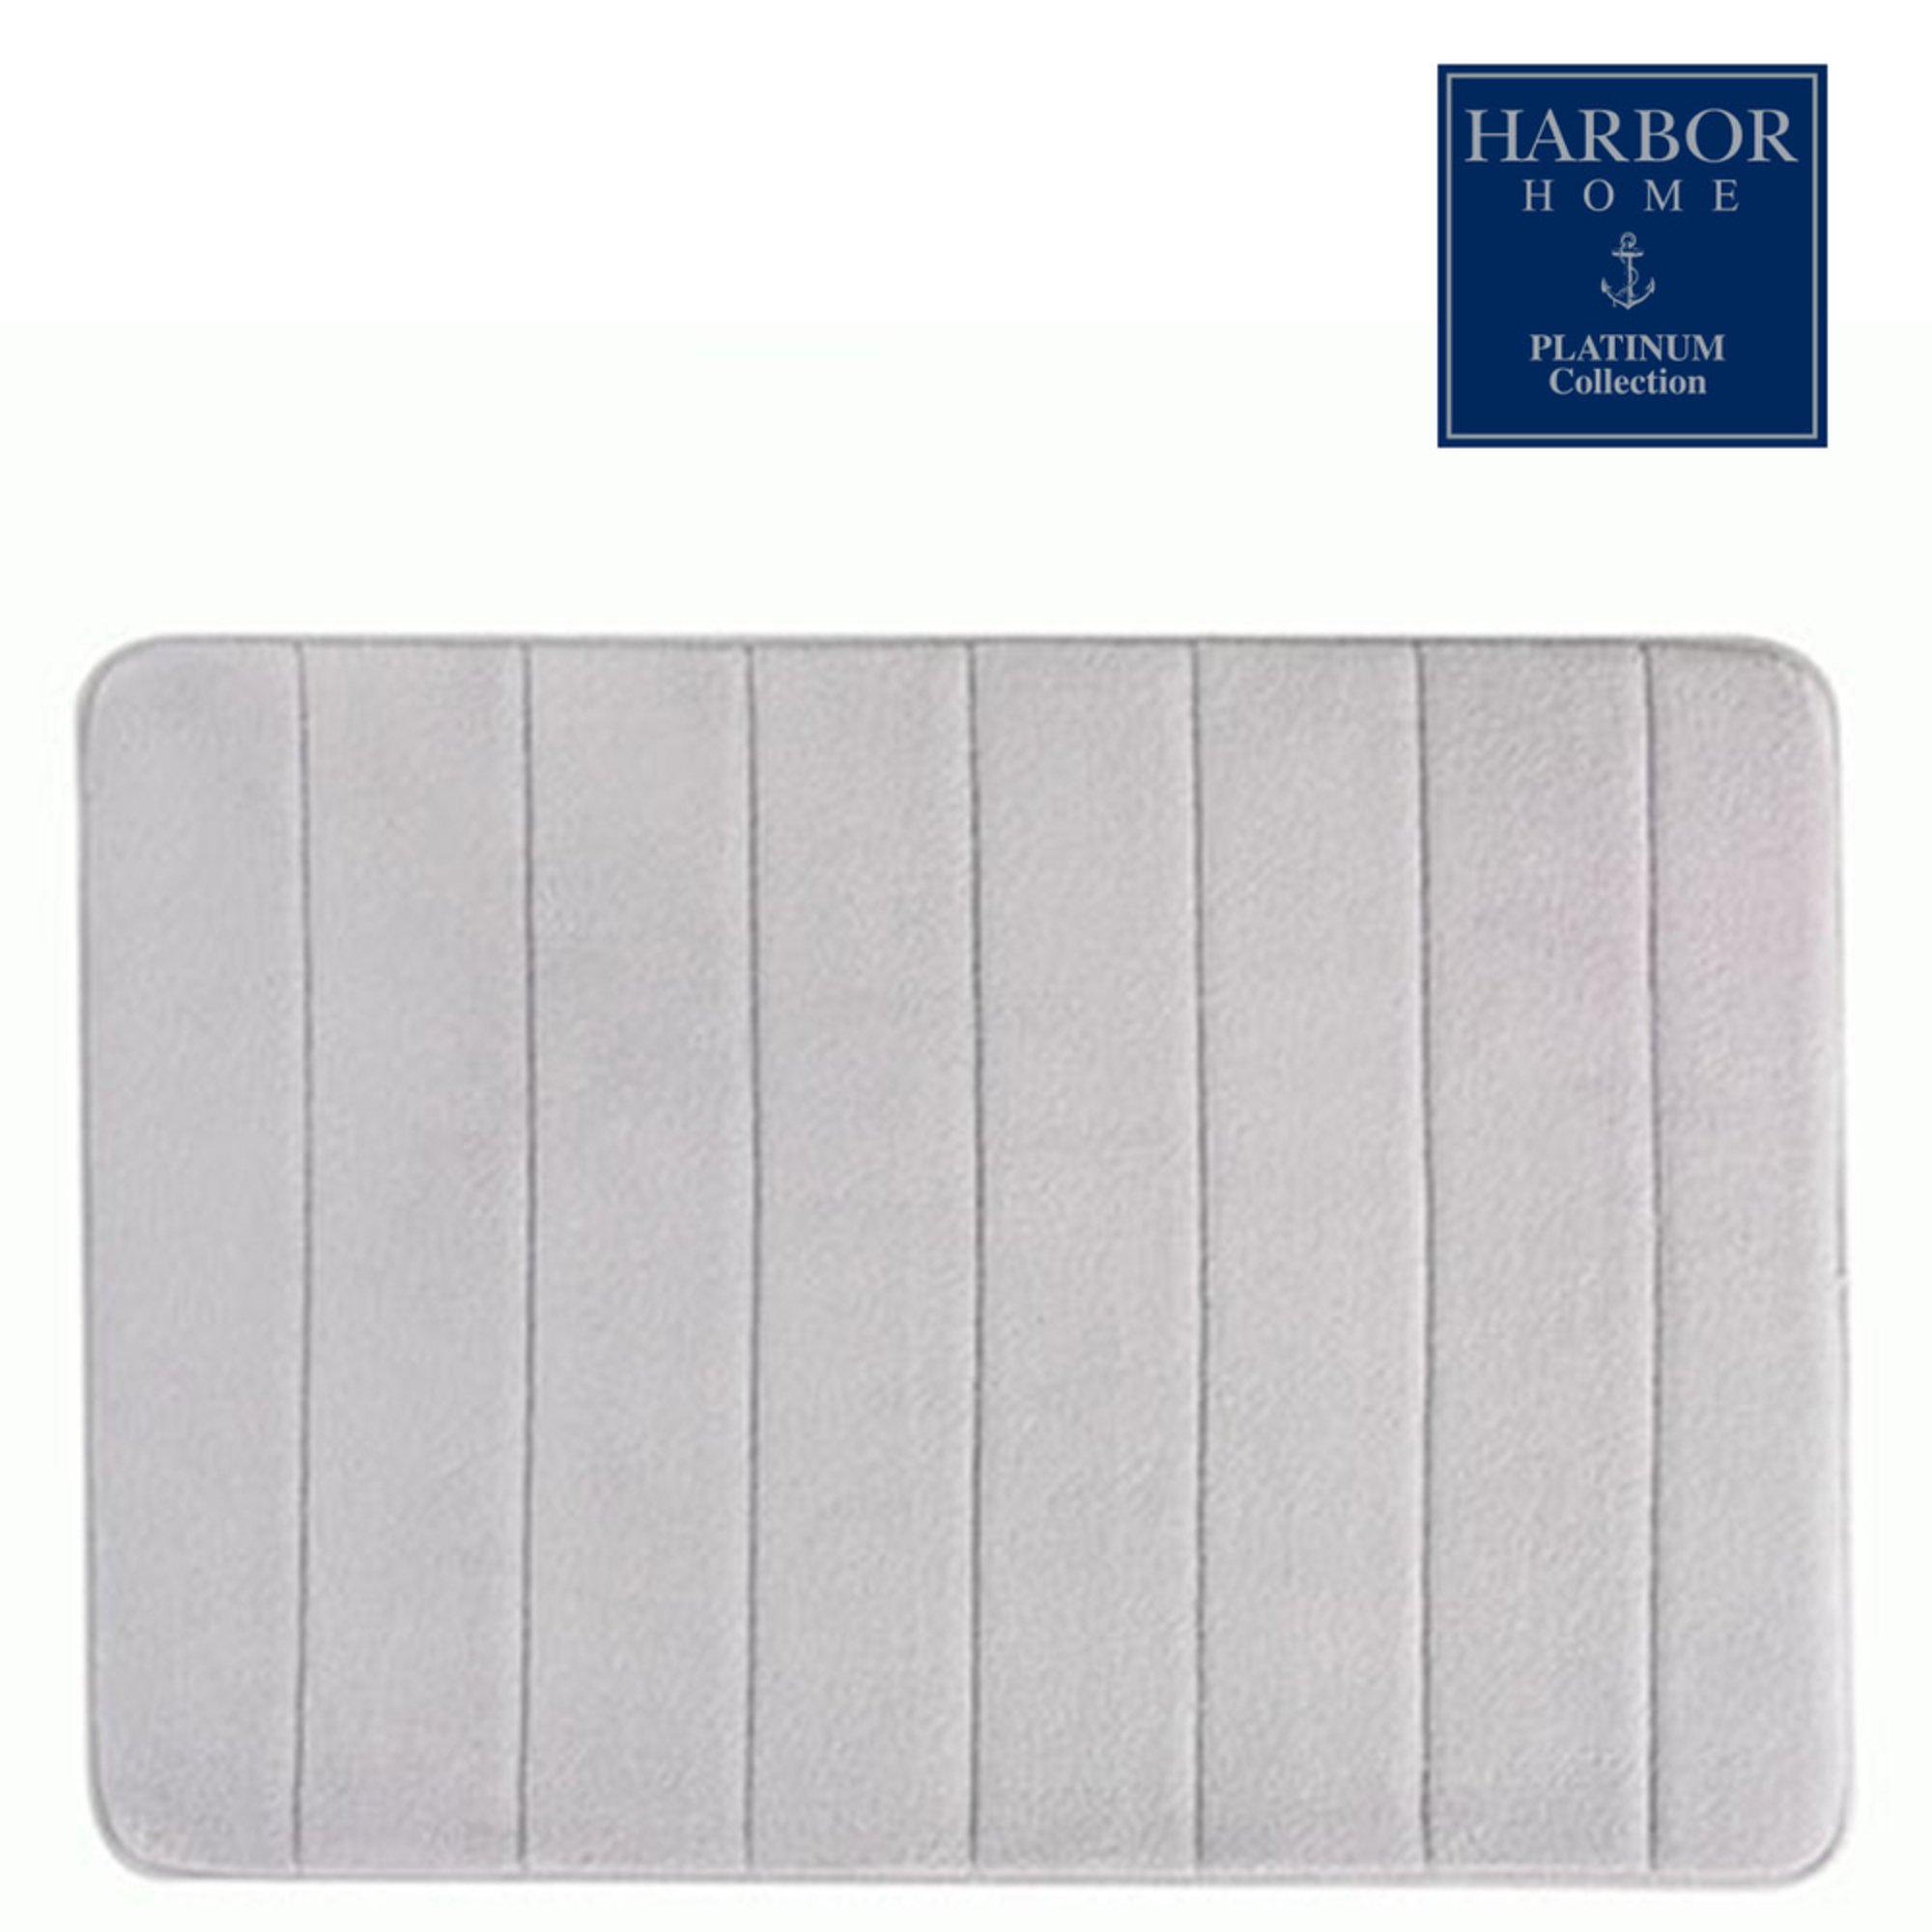 Luxury Bathroom Rugs And Lid Covers Will Layer Cold Surfaces With Warm Textures And Ornamental Motifs With Elegant Bath Rugs And Mats, You Can Cushion Your Exit From The Tub Or Shower And Provide A Little Visual Interest To The Bathroom Floor